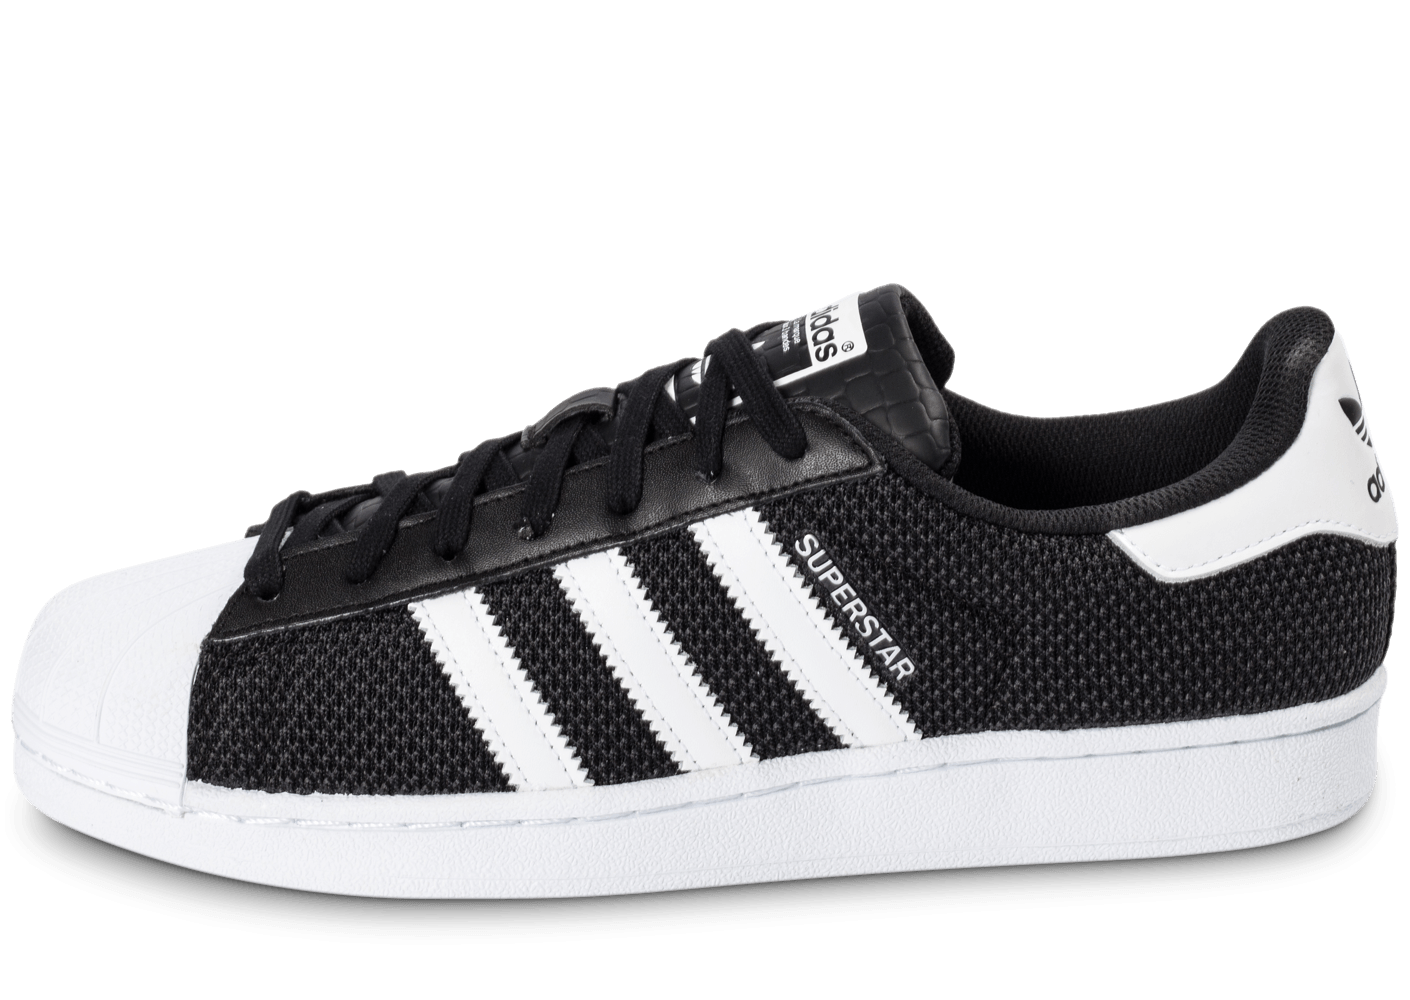 adidas superstar textile noire chaussures homme chausport. Black Bedroom Furniture Sets. Home Design Ideas